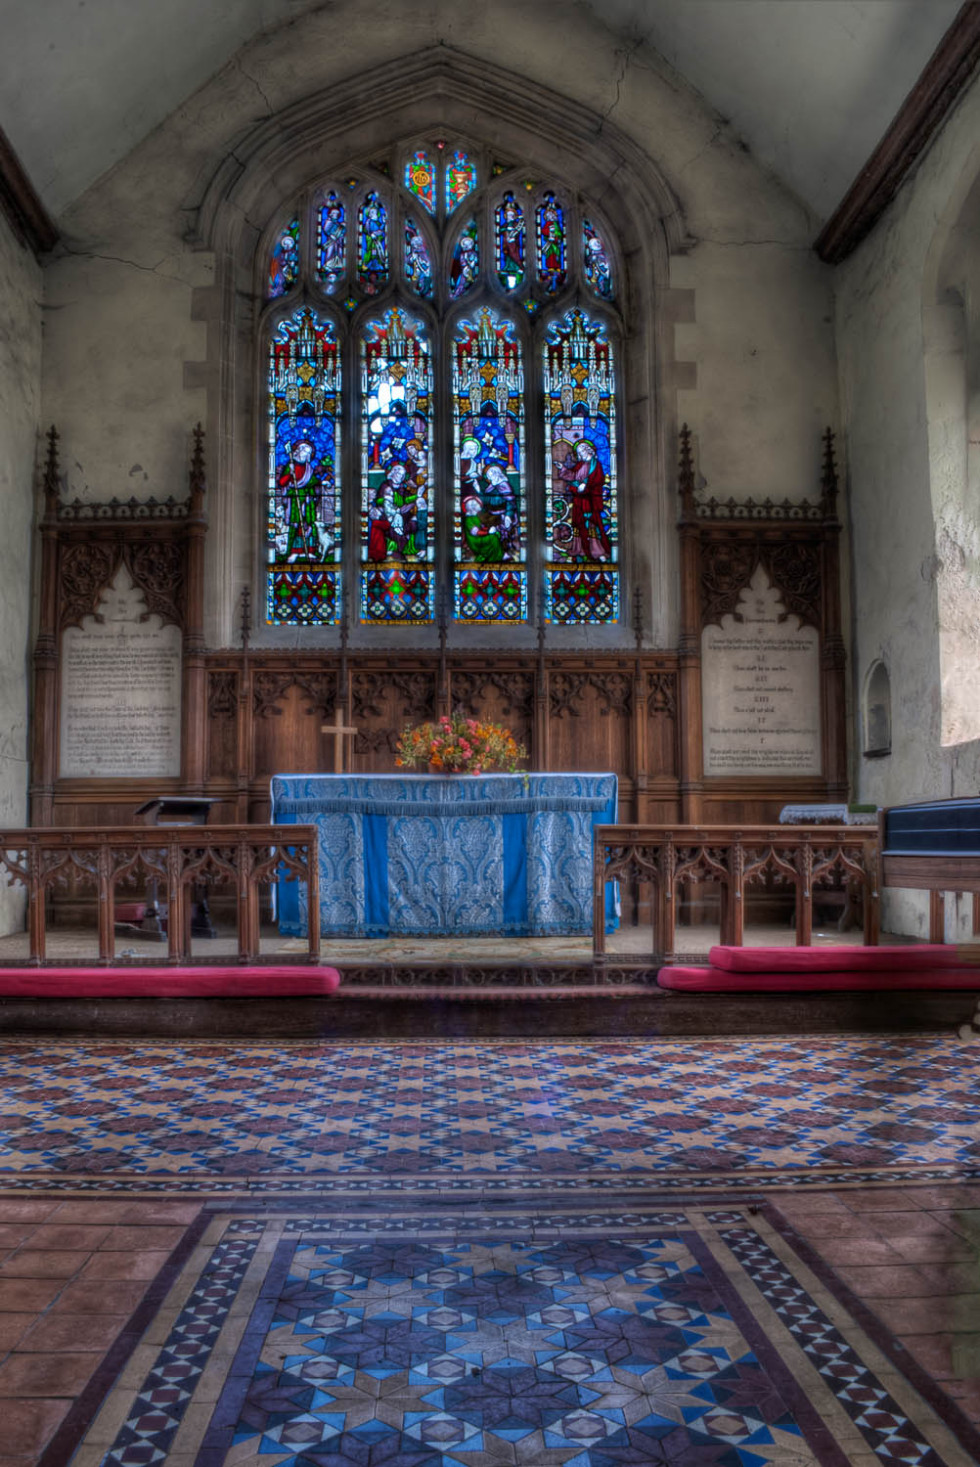 Inside the church at Beauchamp Roding